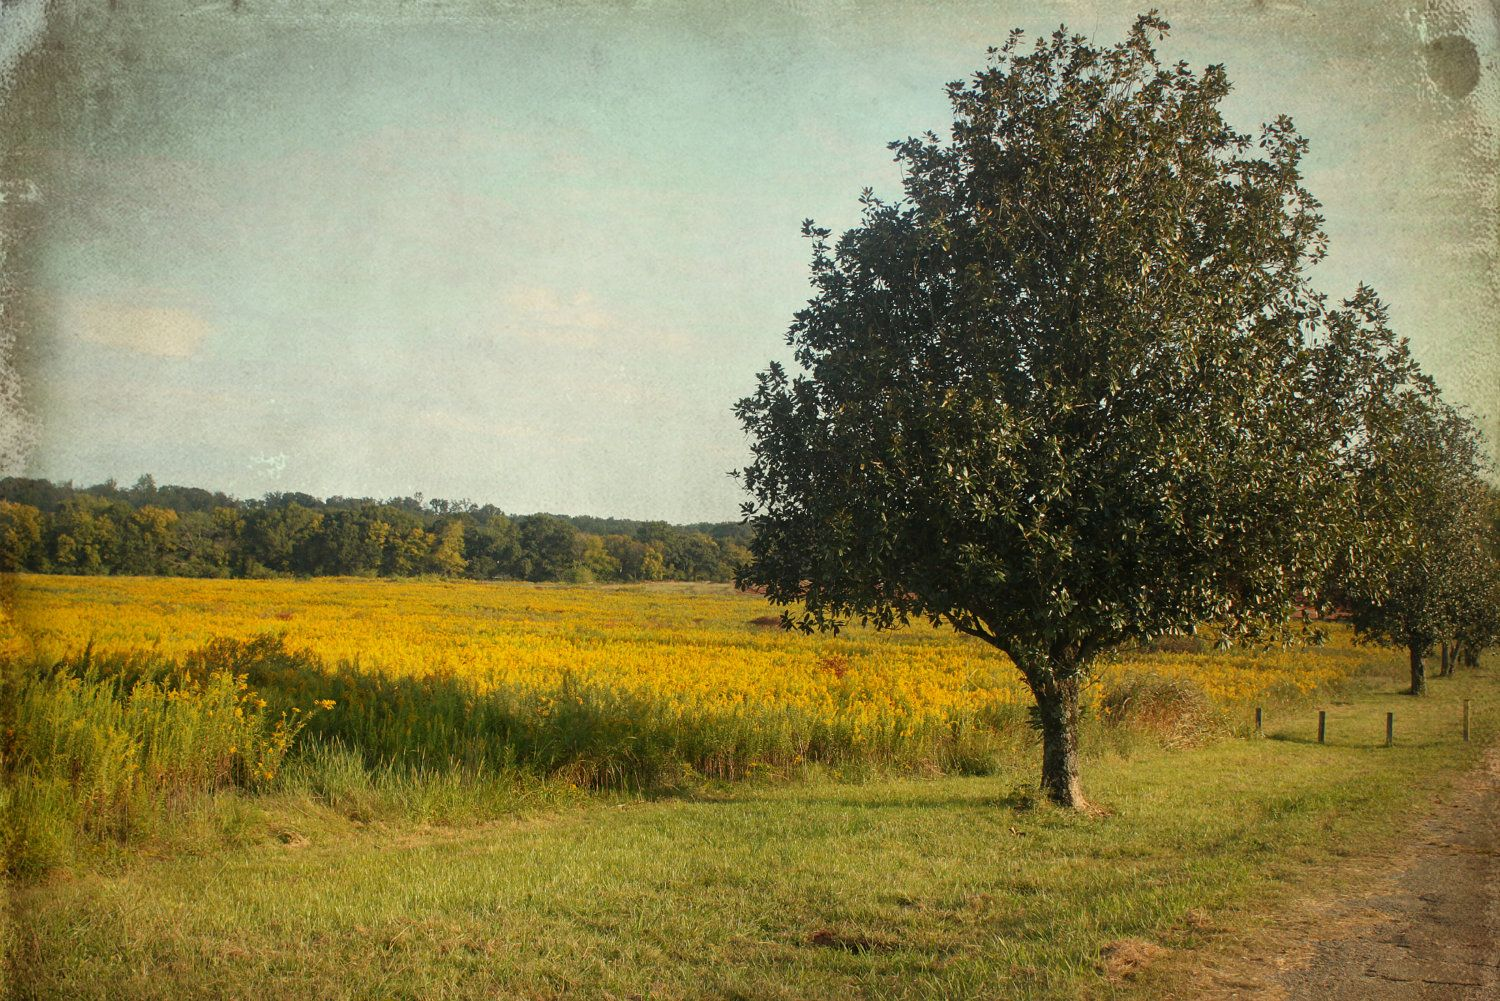 Flower magnolia tree field rural country by SouthernHippie on Etsy, $55.00